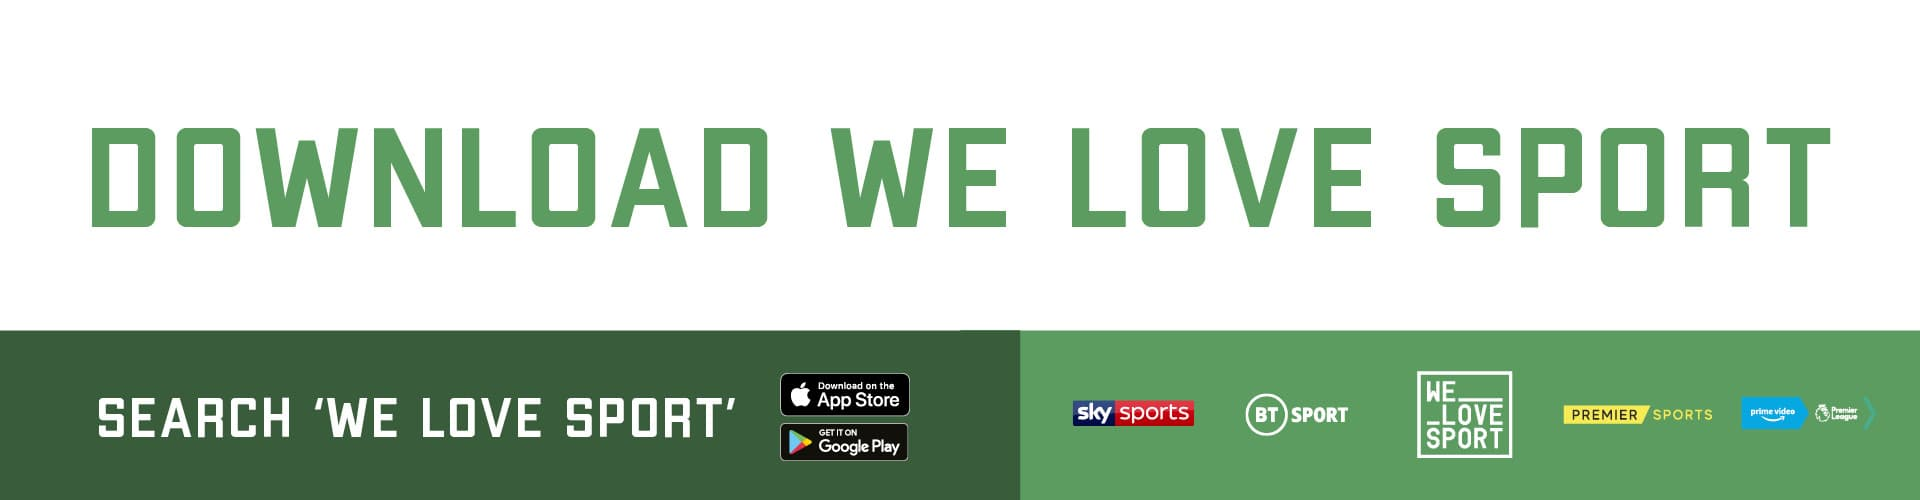 We Love Sport - in partnership with Great UK Pubs